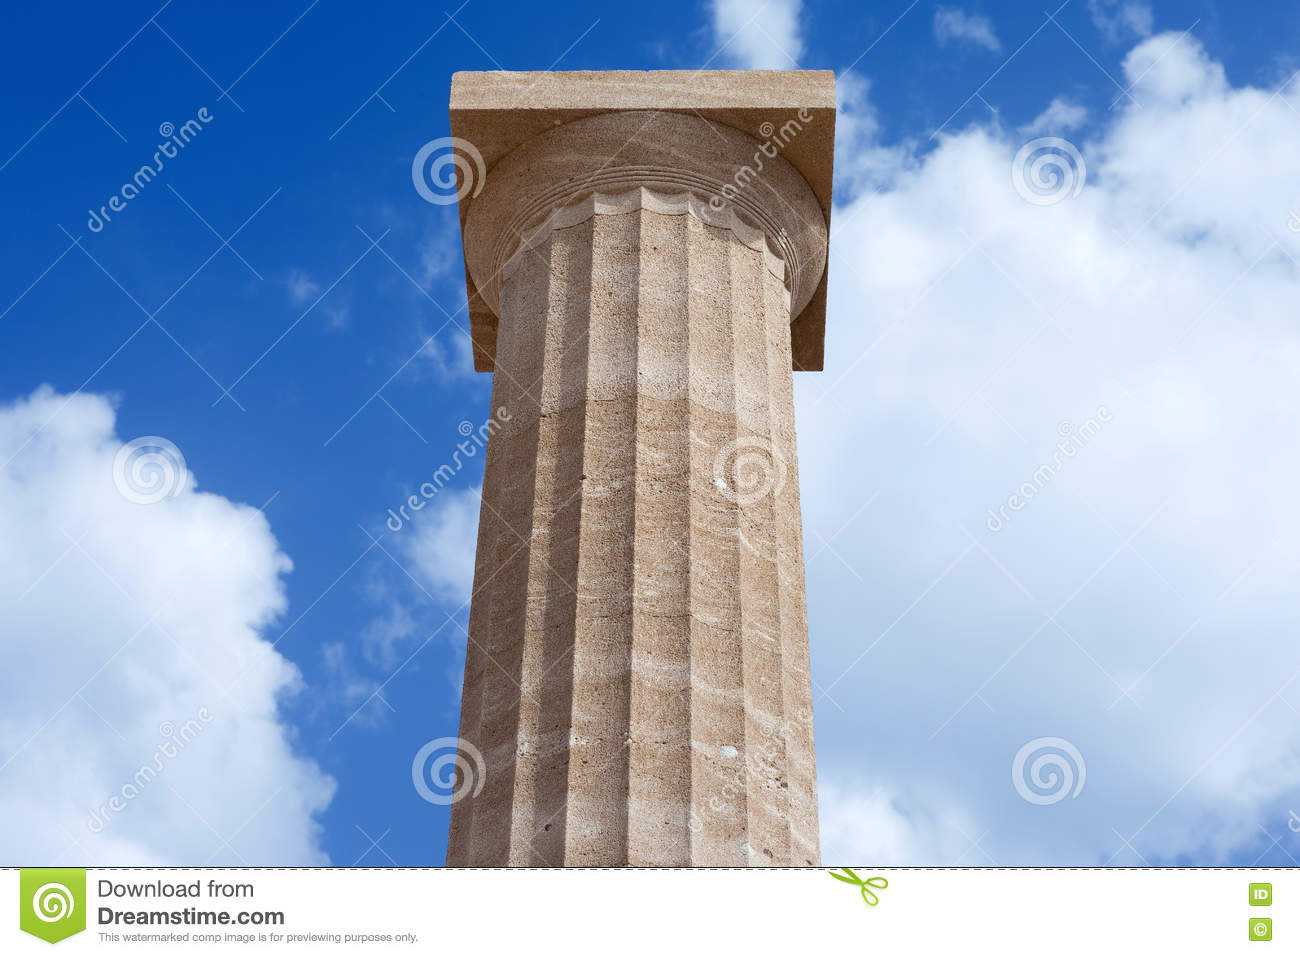 Ancient Greek Pillar Stock Photo - Image: 79283398